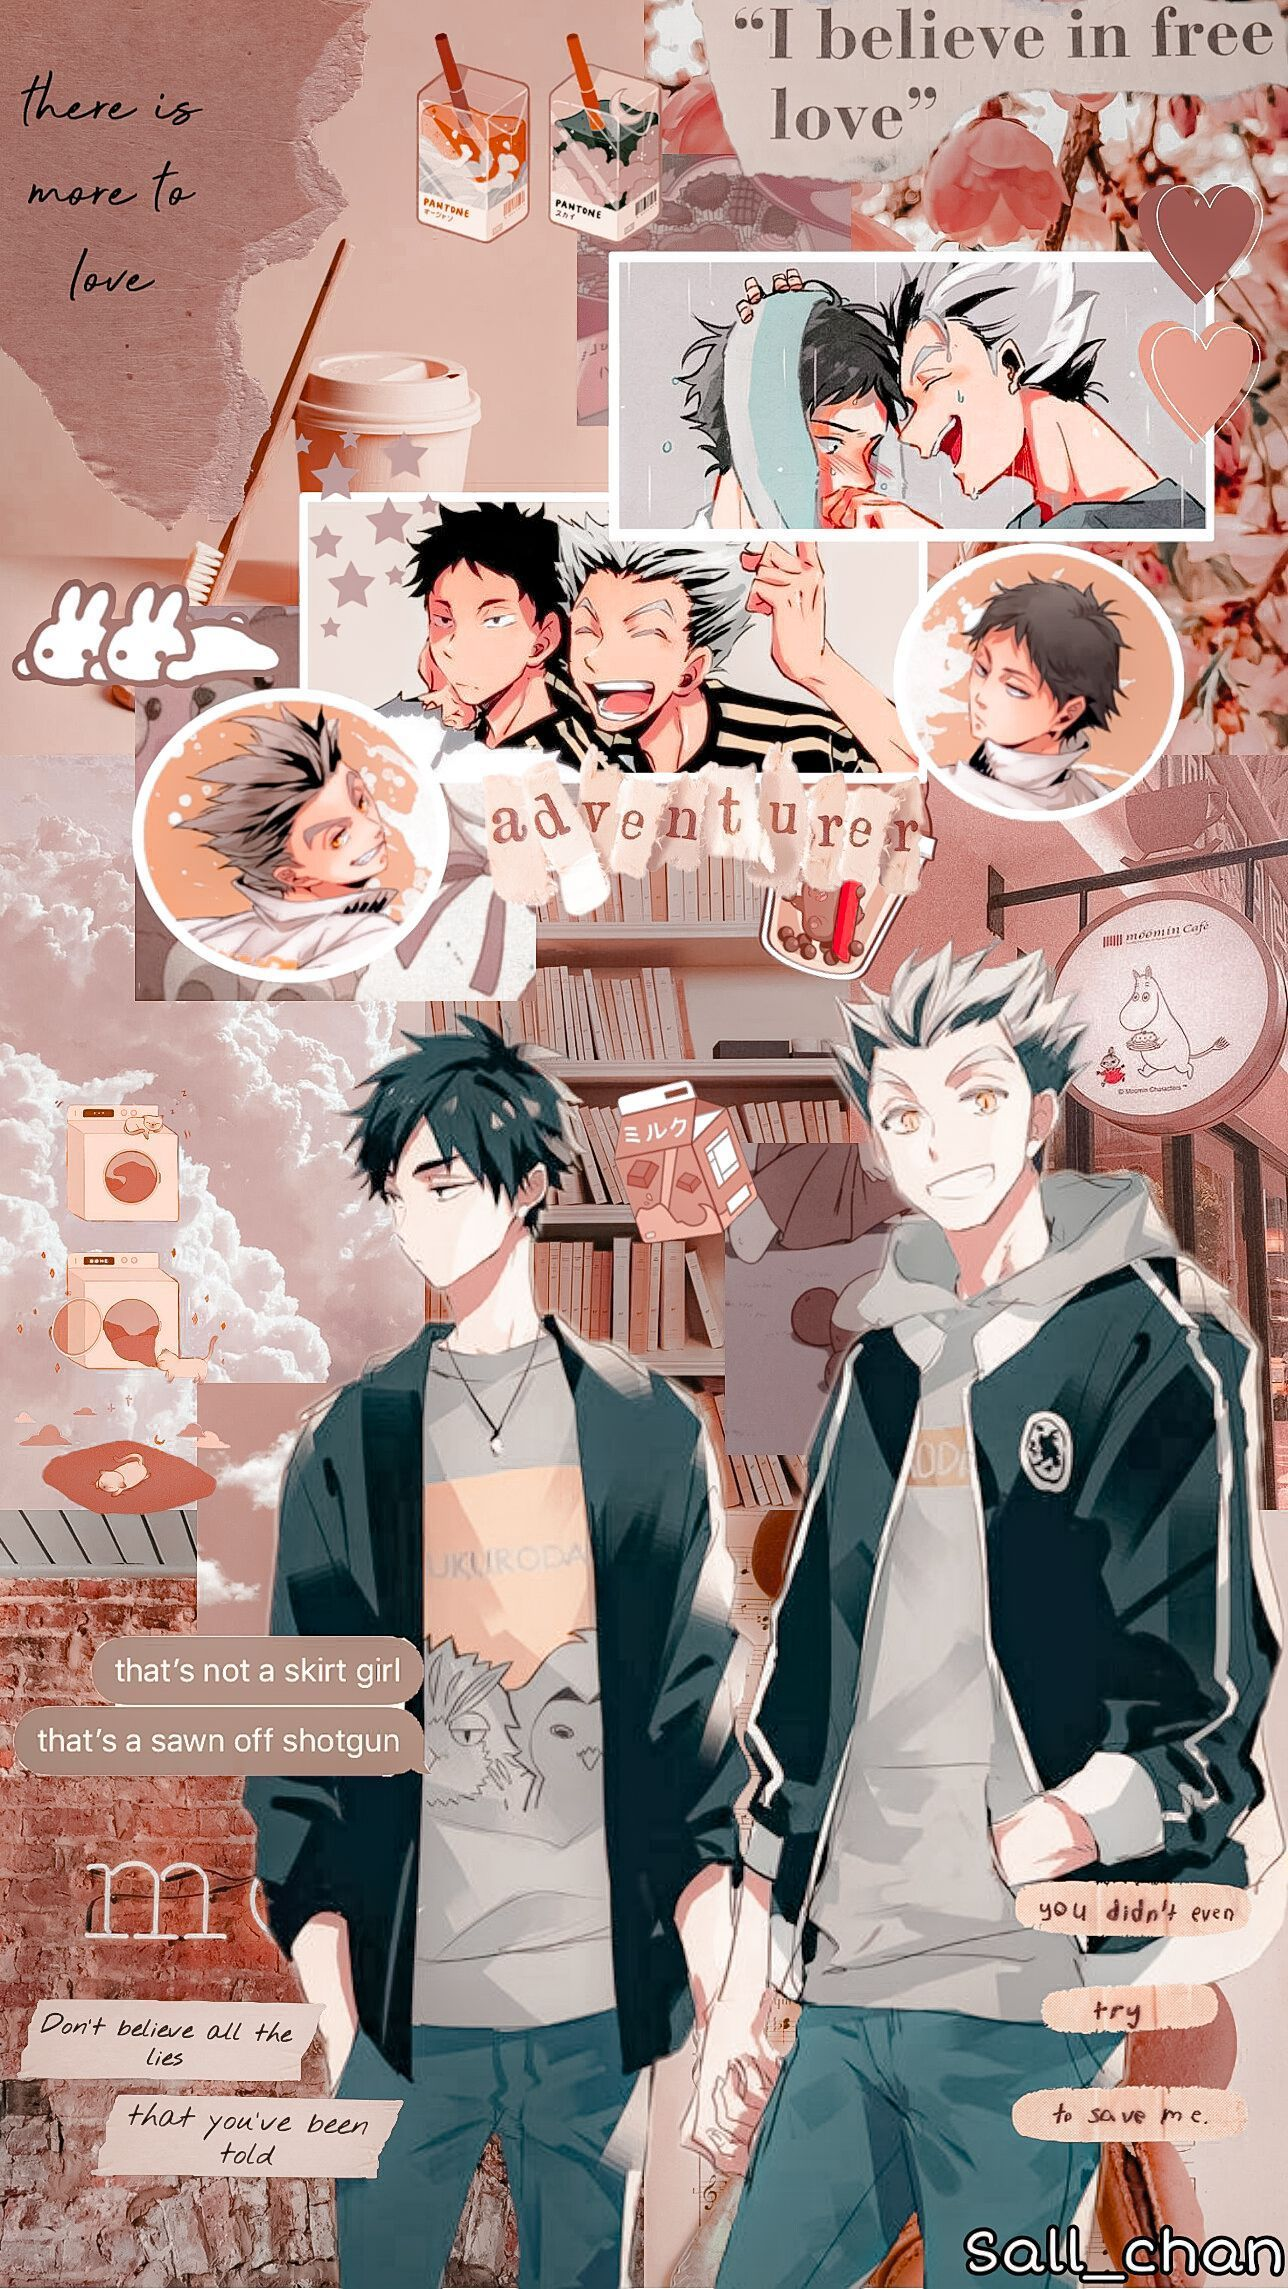 Aesthetic Anime Wallpaper Haikyuu Aesthetic Anime Wallpaper Haikyuu Anime Anime Wallpaper Iphone Haikyuu Wallpaper